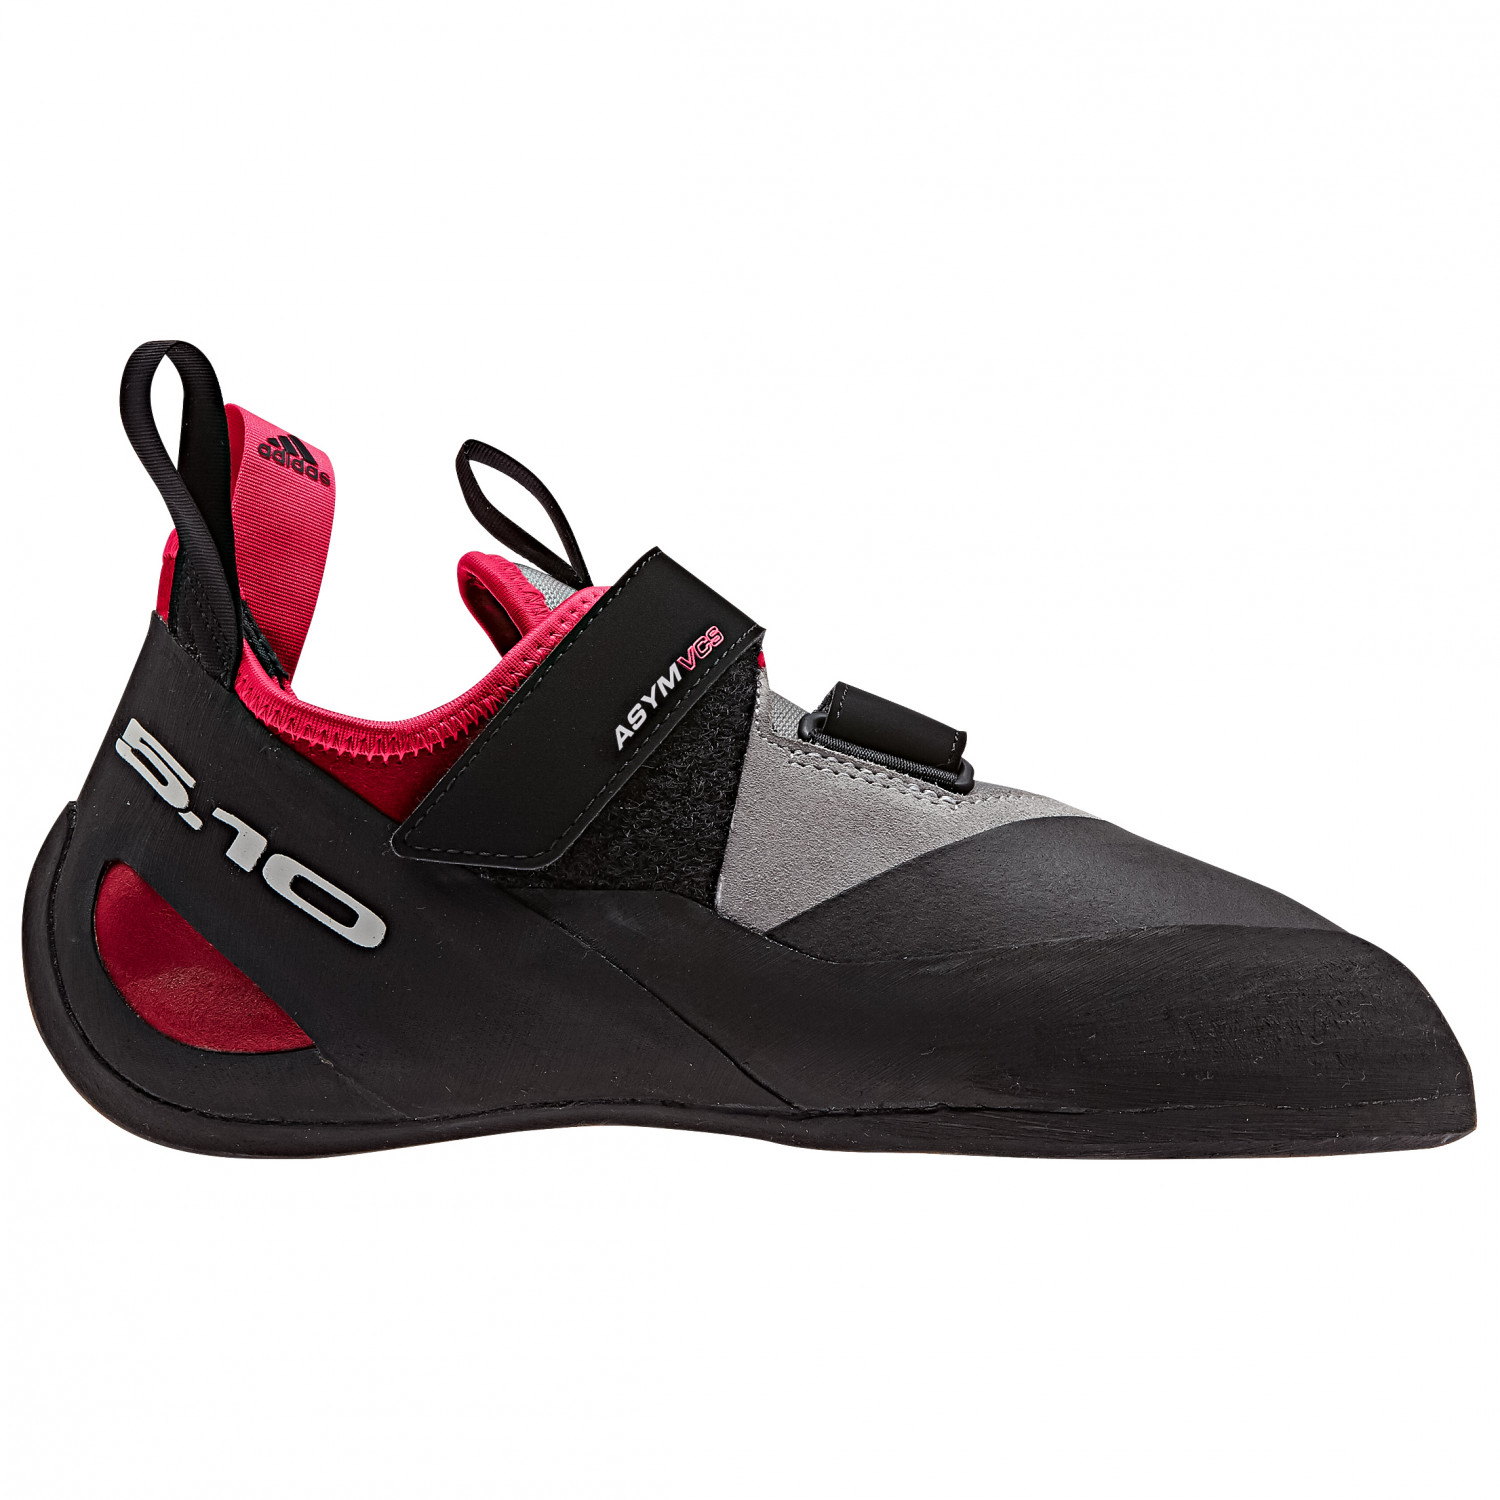 Five Ten Womens Rogue VCS Climbing Shoe